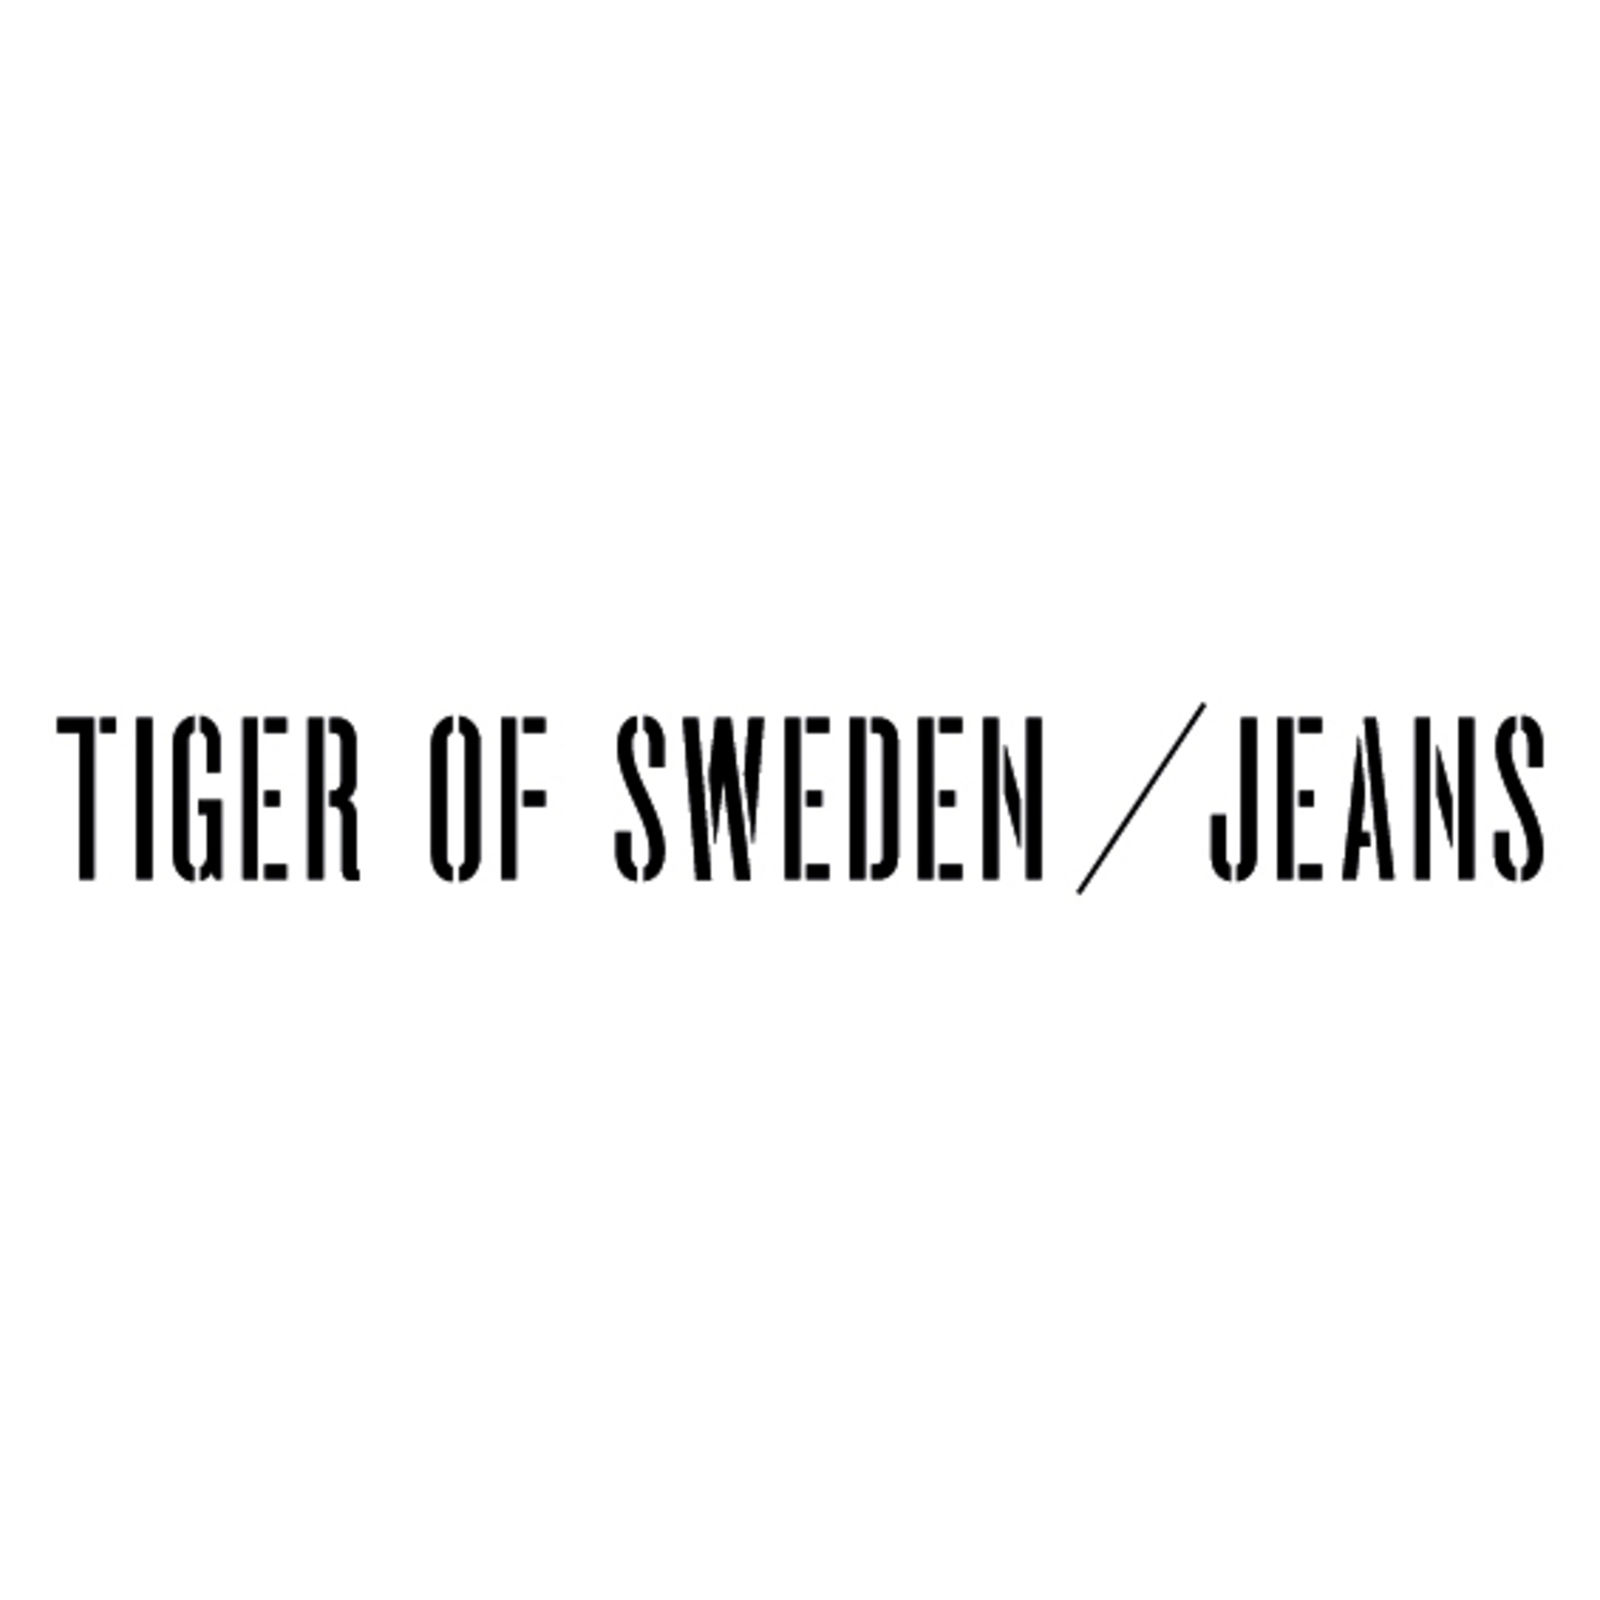 TIGER OF SWEDEN/ JEANS (Bild 1)